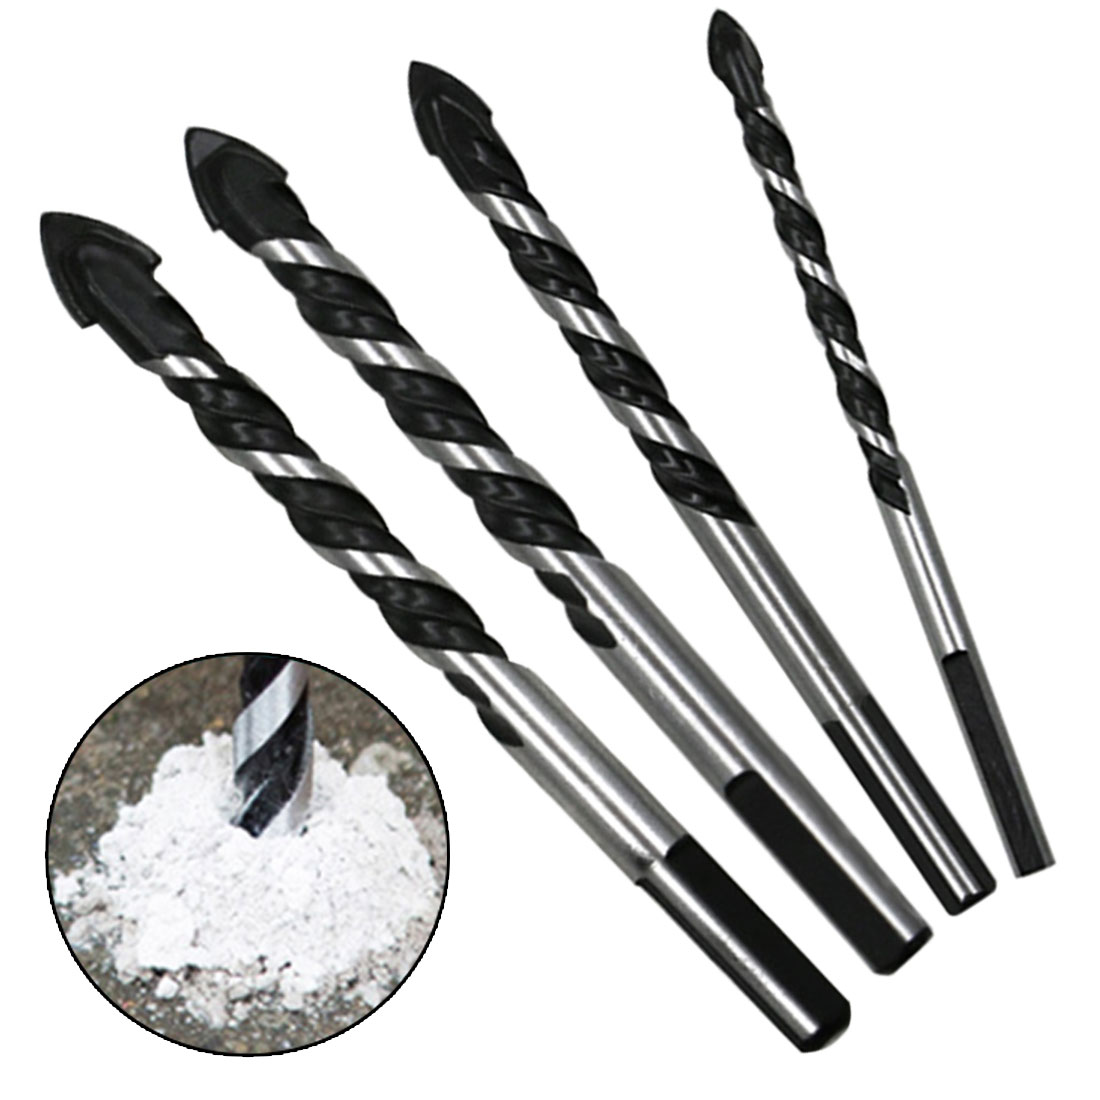 Multifunctional 6-12mm Glass Drill Bit Twist Spade Drill Triangle Bits For Ceramic Tile Concrete Glass Marble